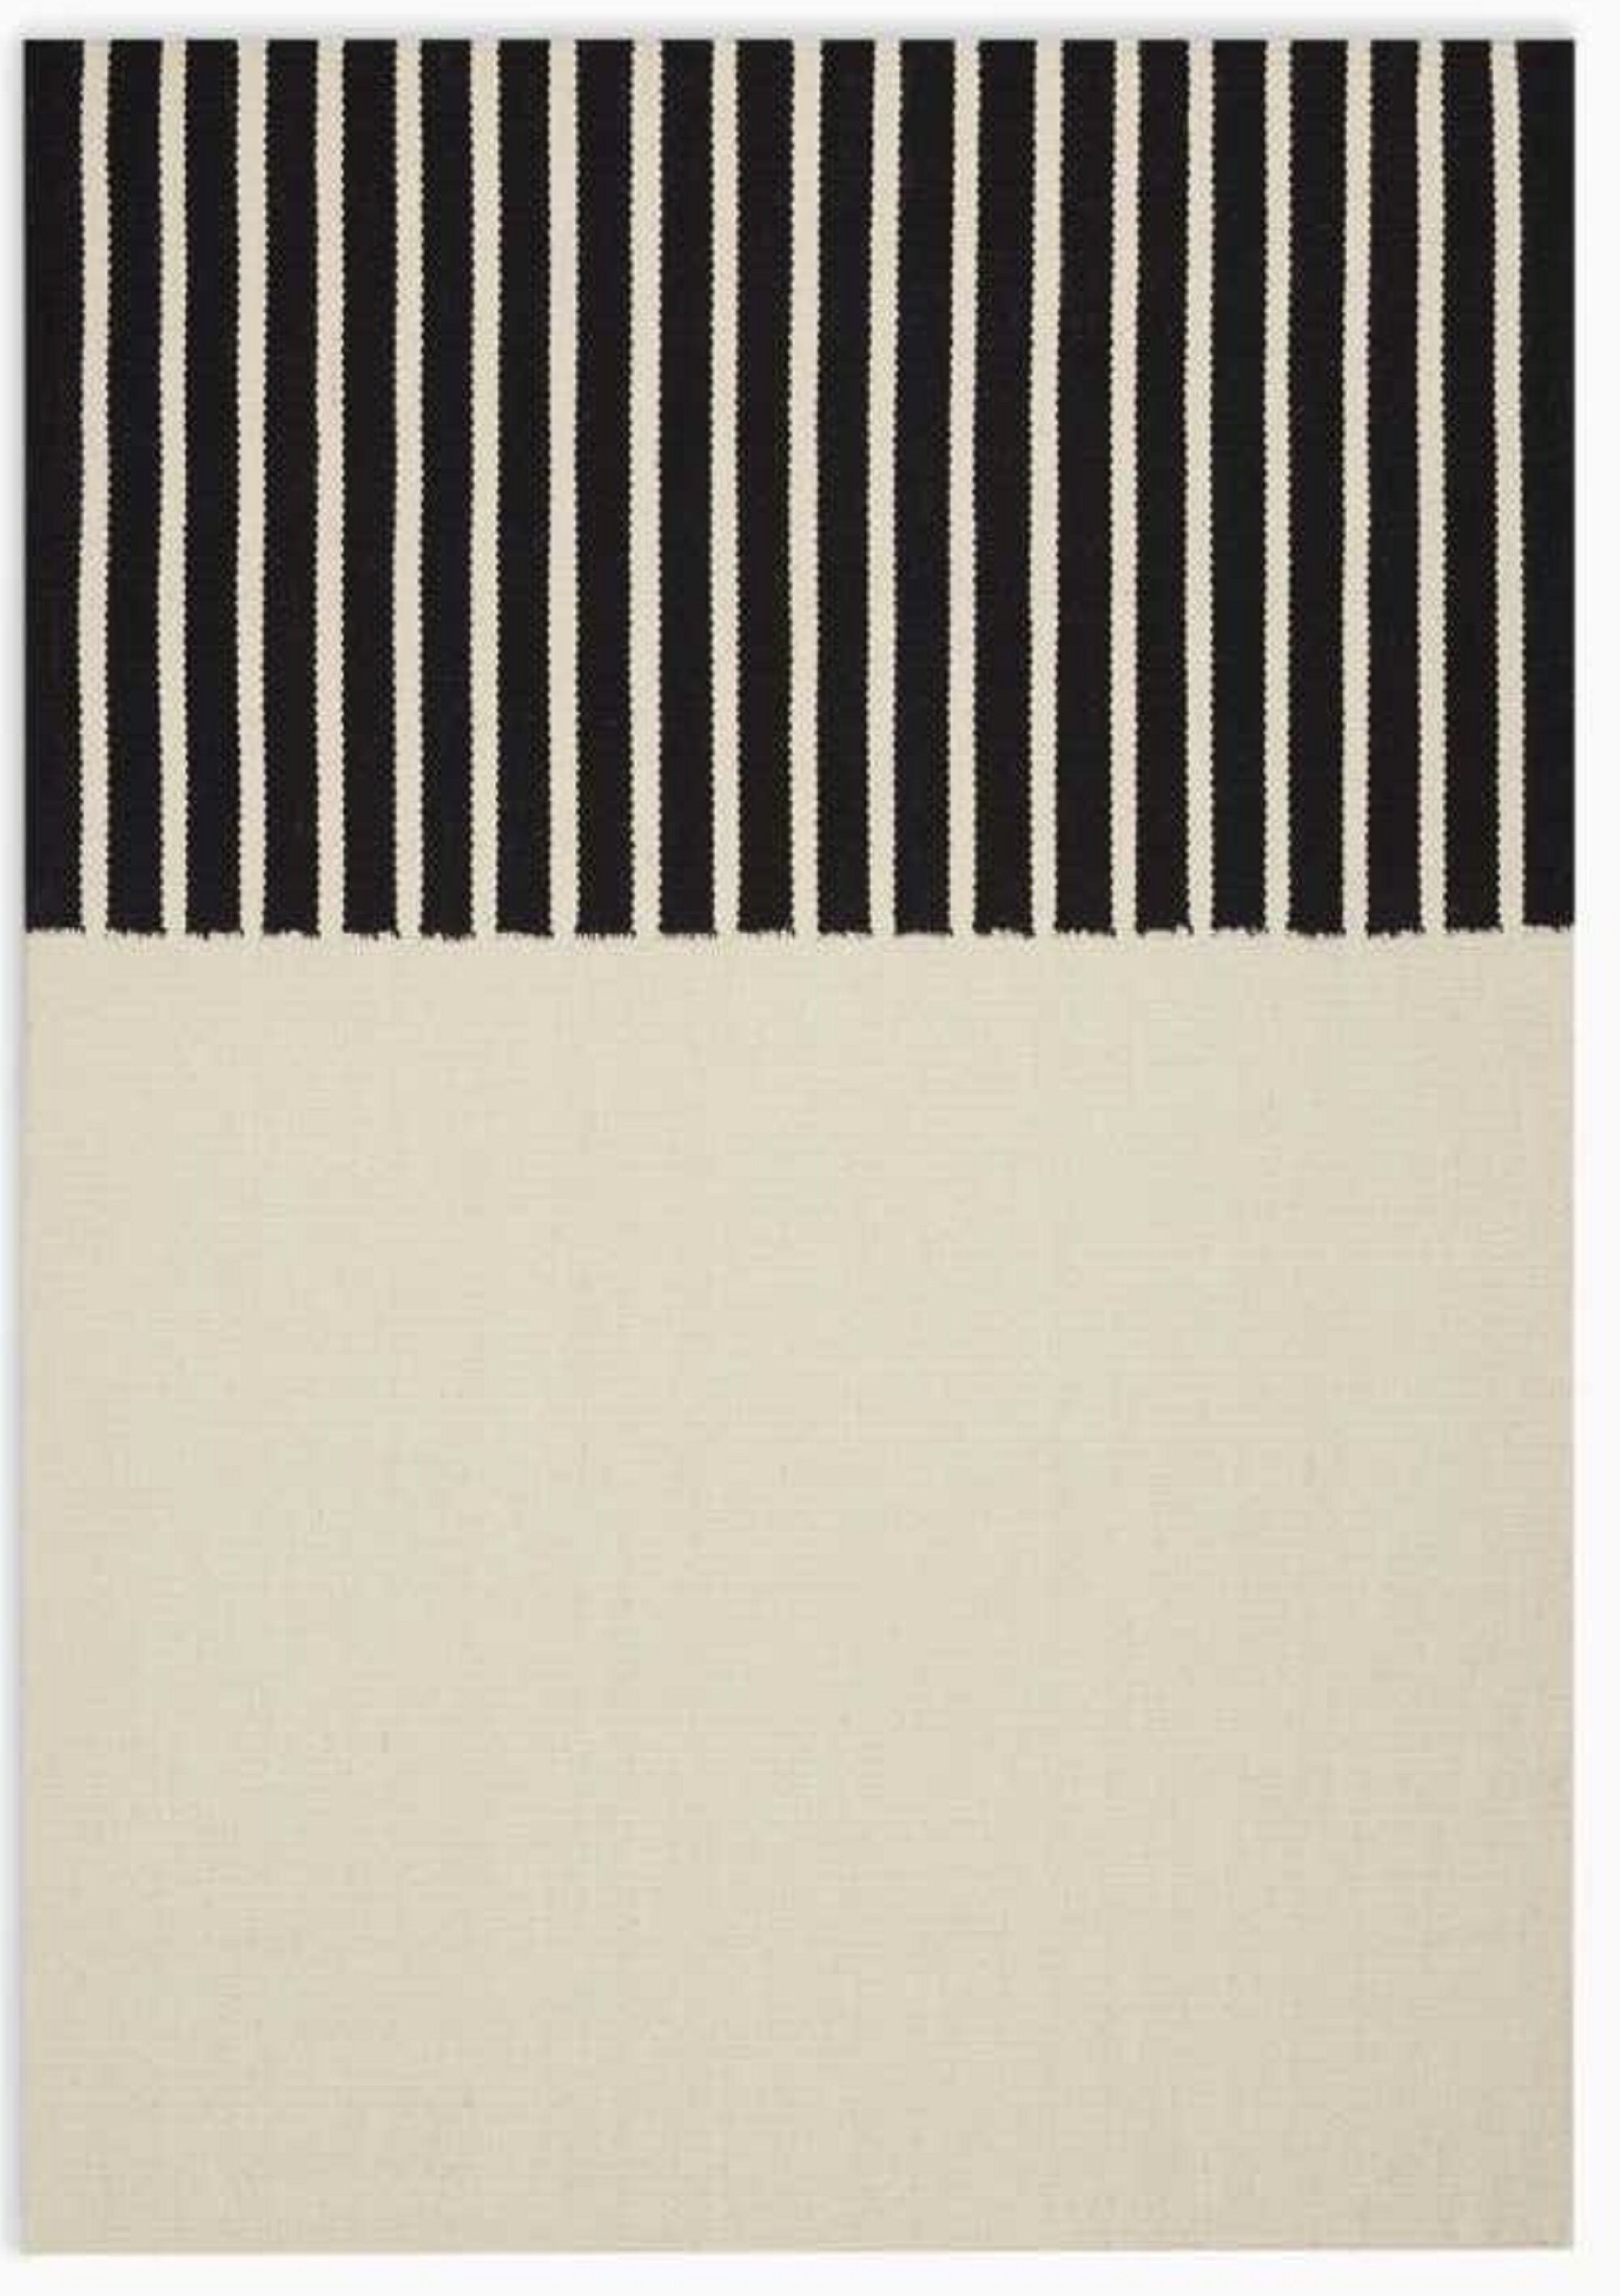 Nashville Modern Hand-Woven Ivory/Black Area Rug Rug Size: Rectangle 5' x 7'